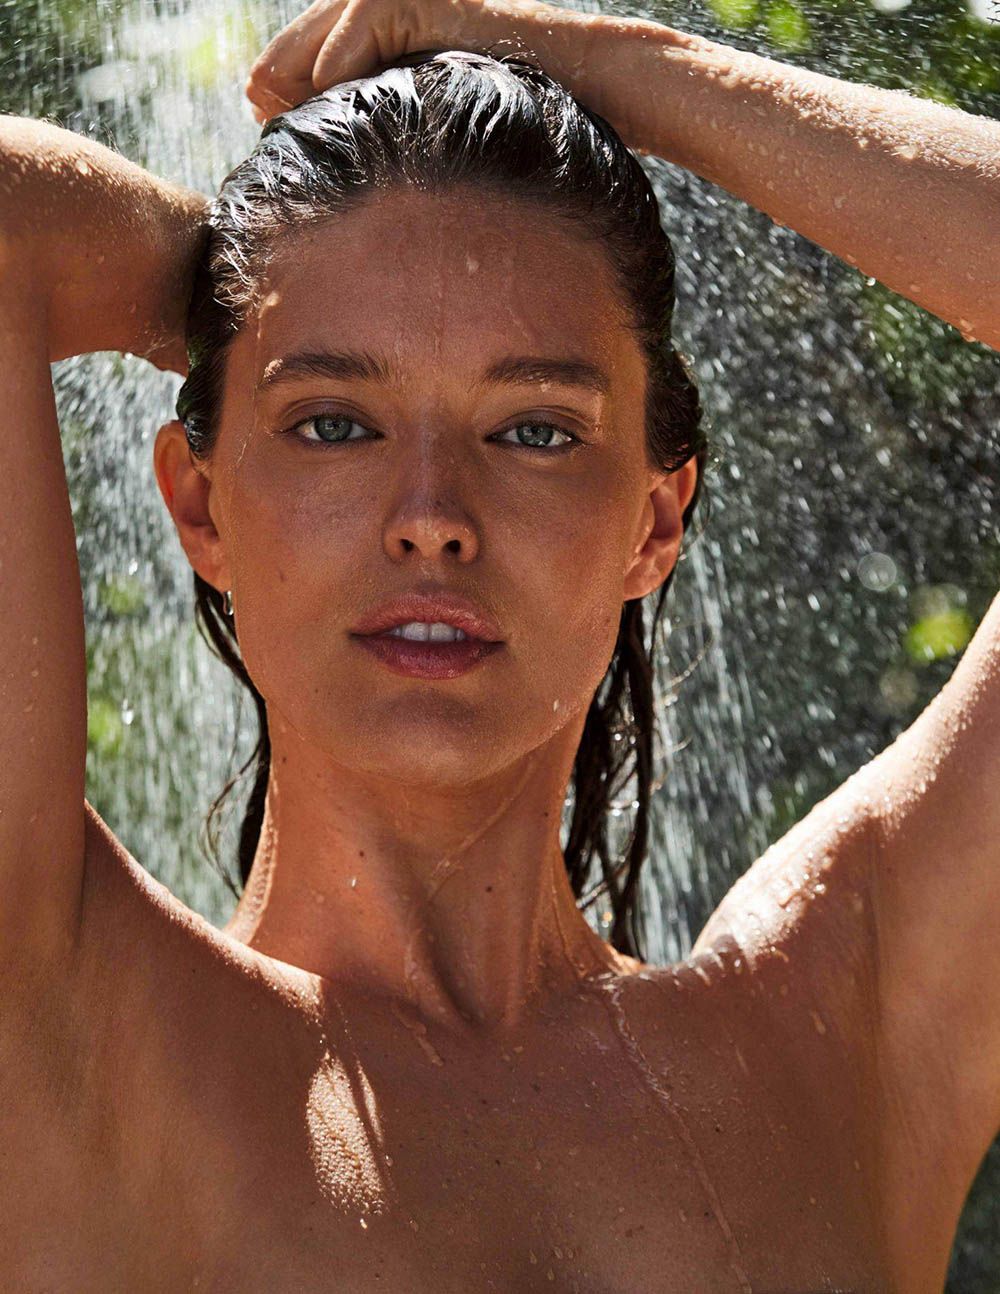 Emily DiDonato covers Madame Figaro April 3rd, 2020 by David Roemer